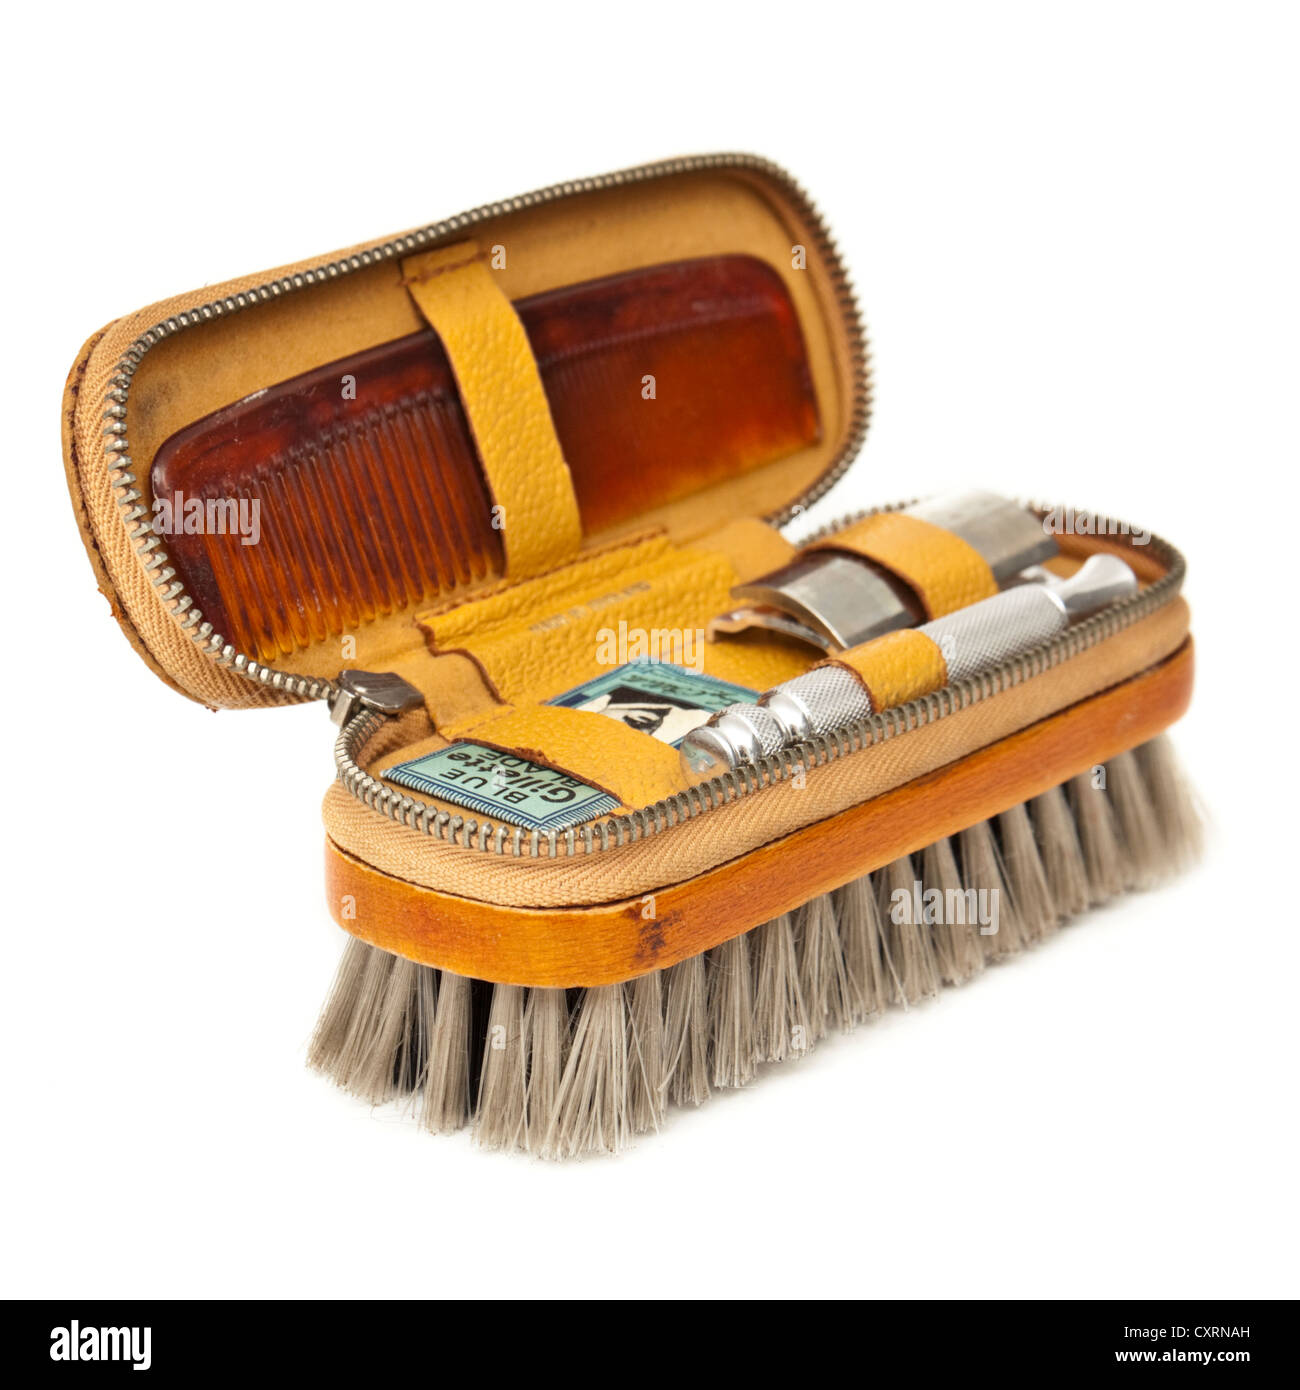 Vintage gentlemen's travel / shaving kit with brush, comb and Gillette razor - Stock Image